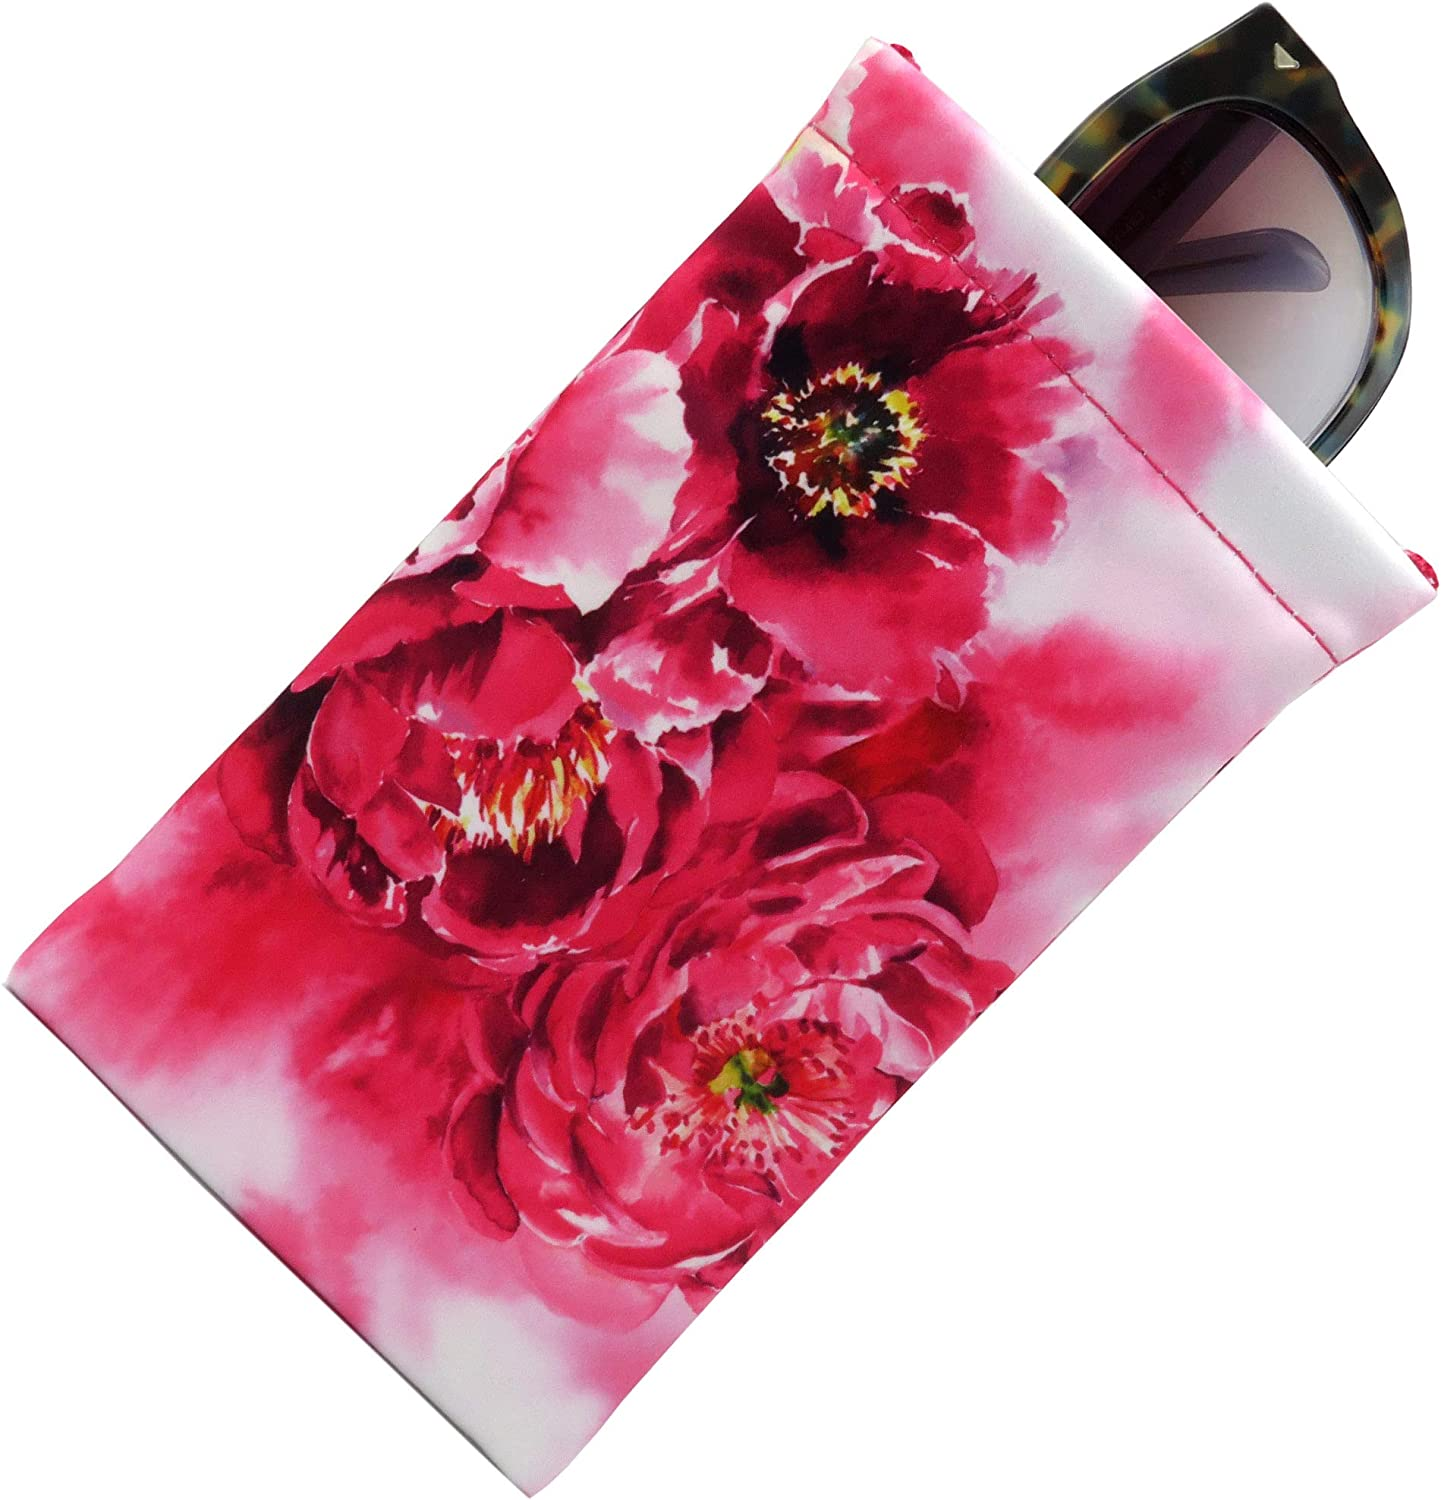 Soft Sunglasses case Columbus Mall Large soft Top Gorgeous Case eyeglass ey Squeeze